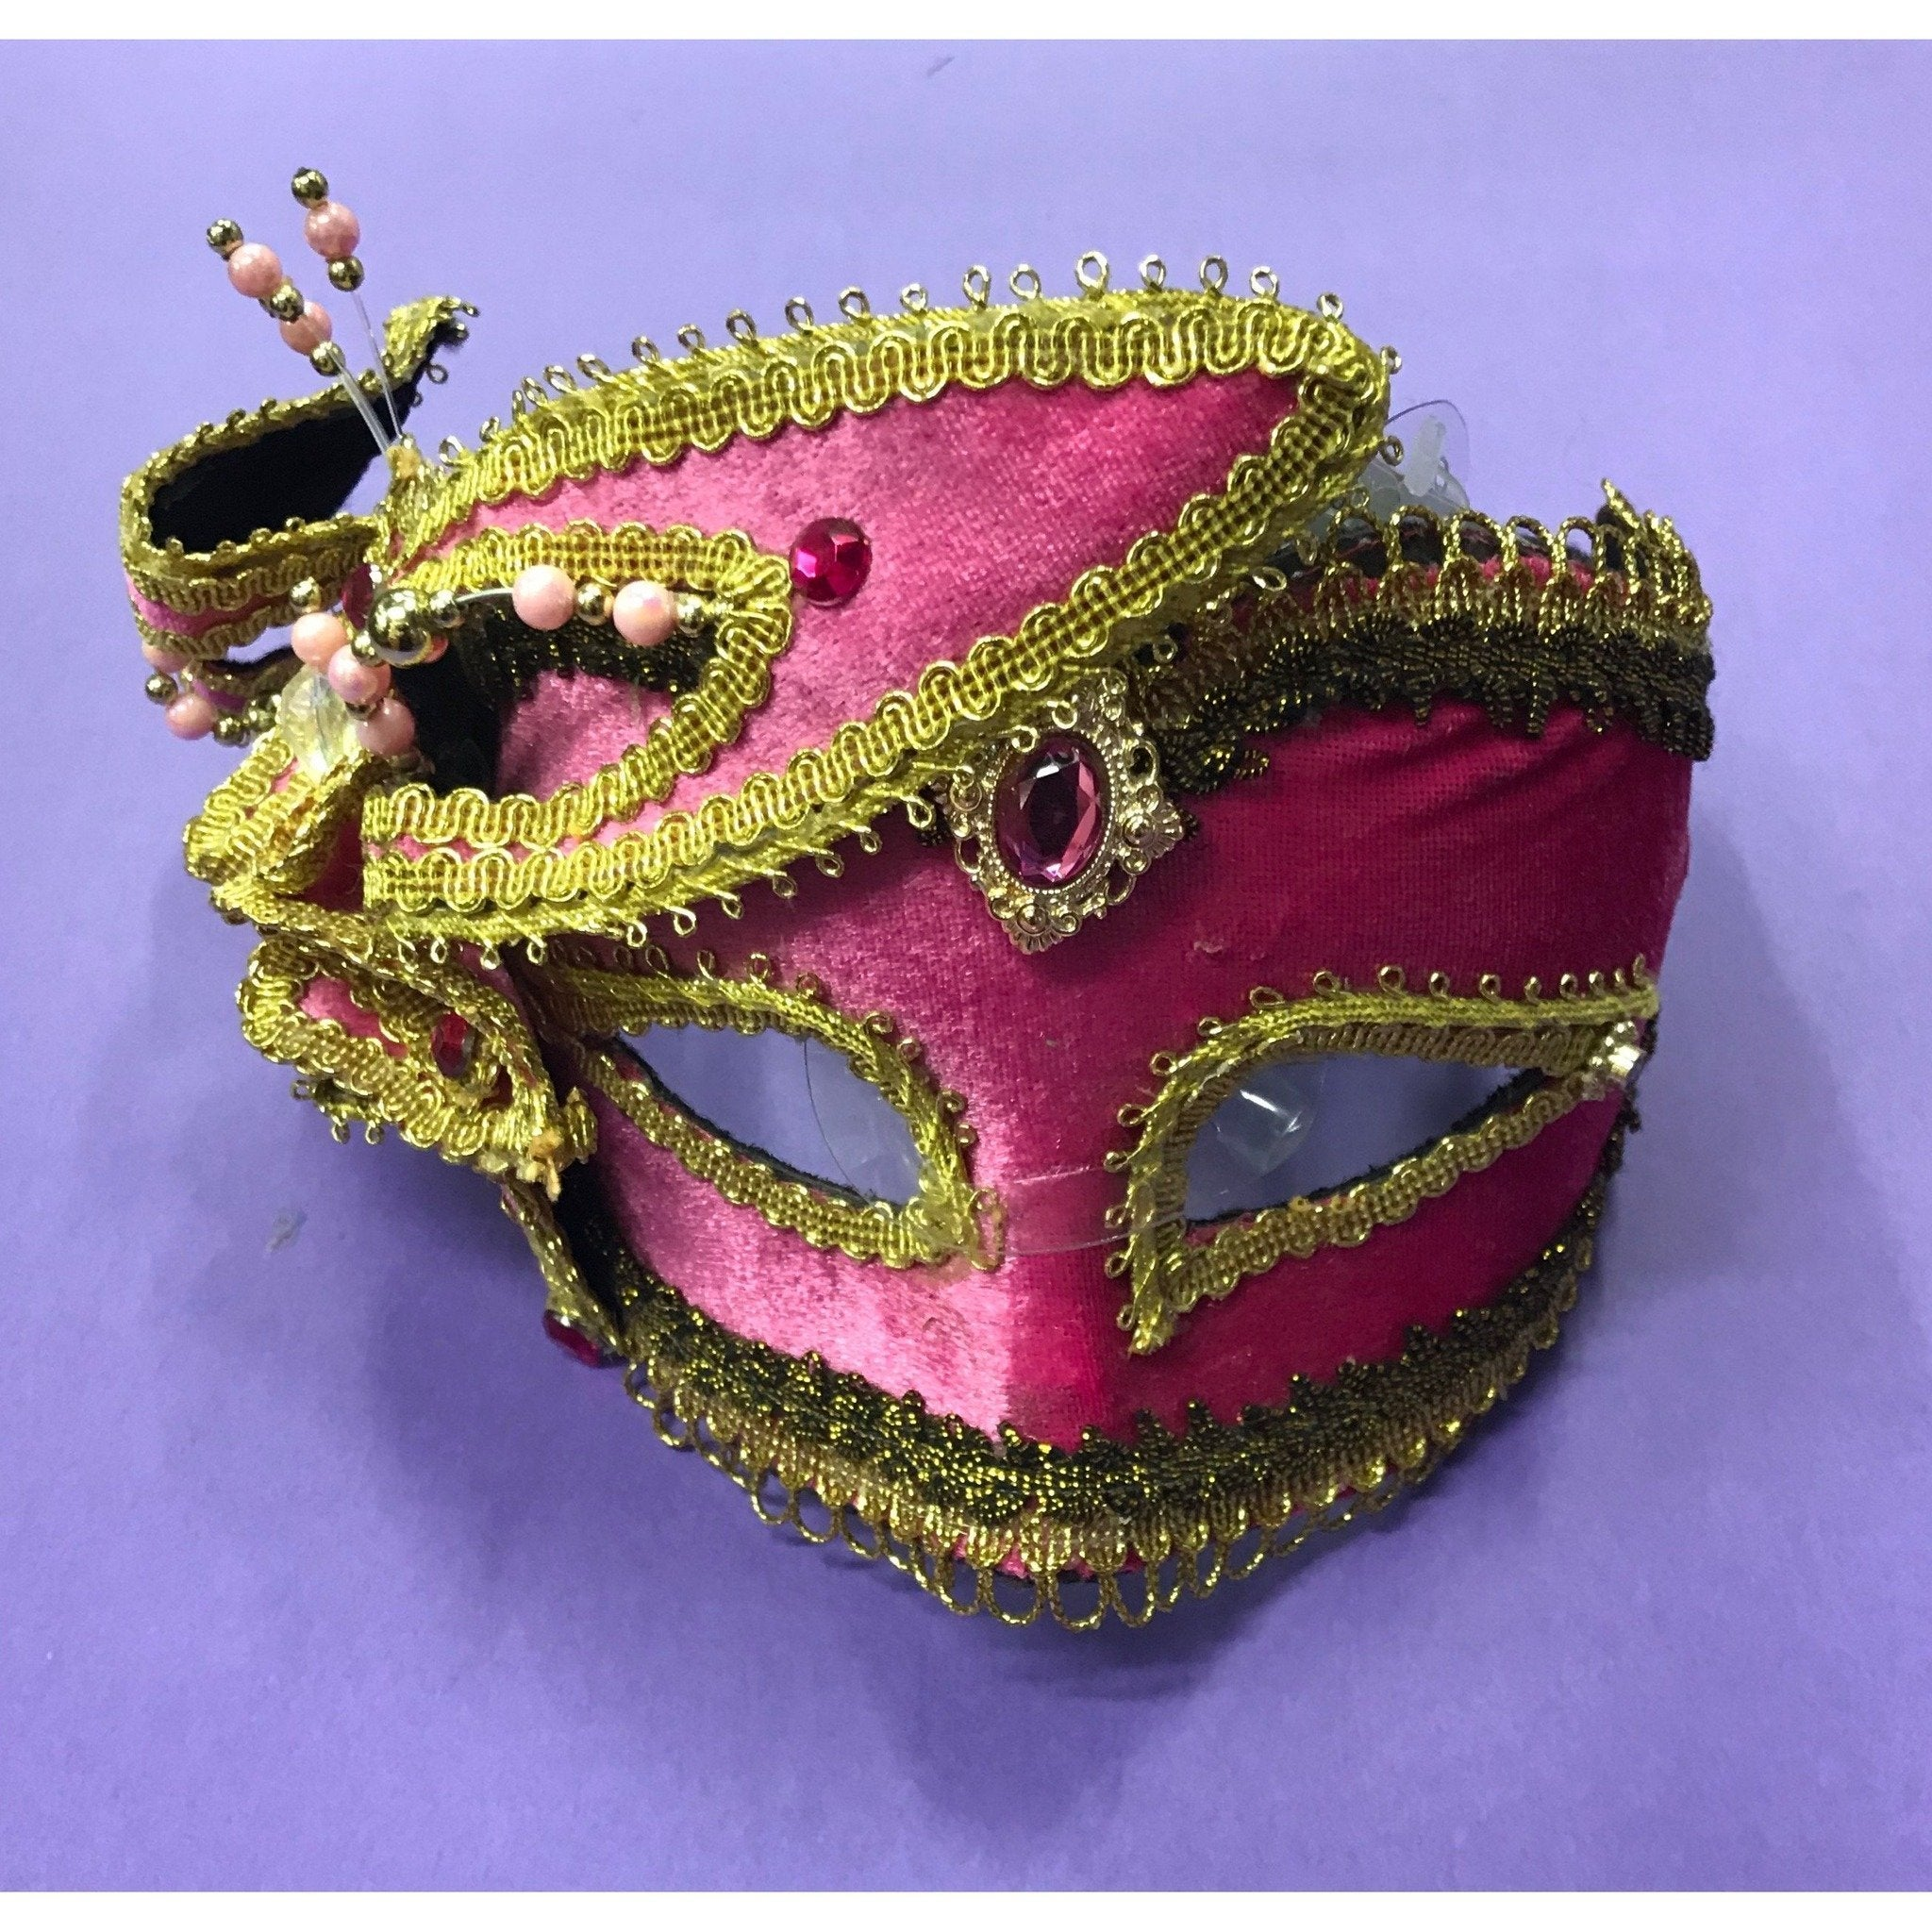 Pink Carnival Masquerade Mask - The Costume Company | Fancy Dress Costumes Hire and Purchase Brisbane and Australia